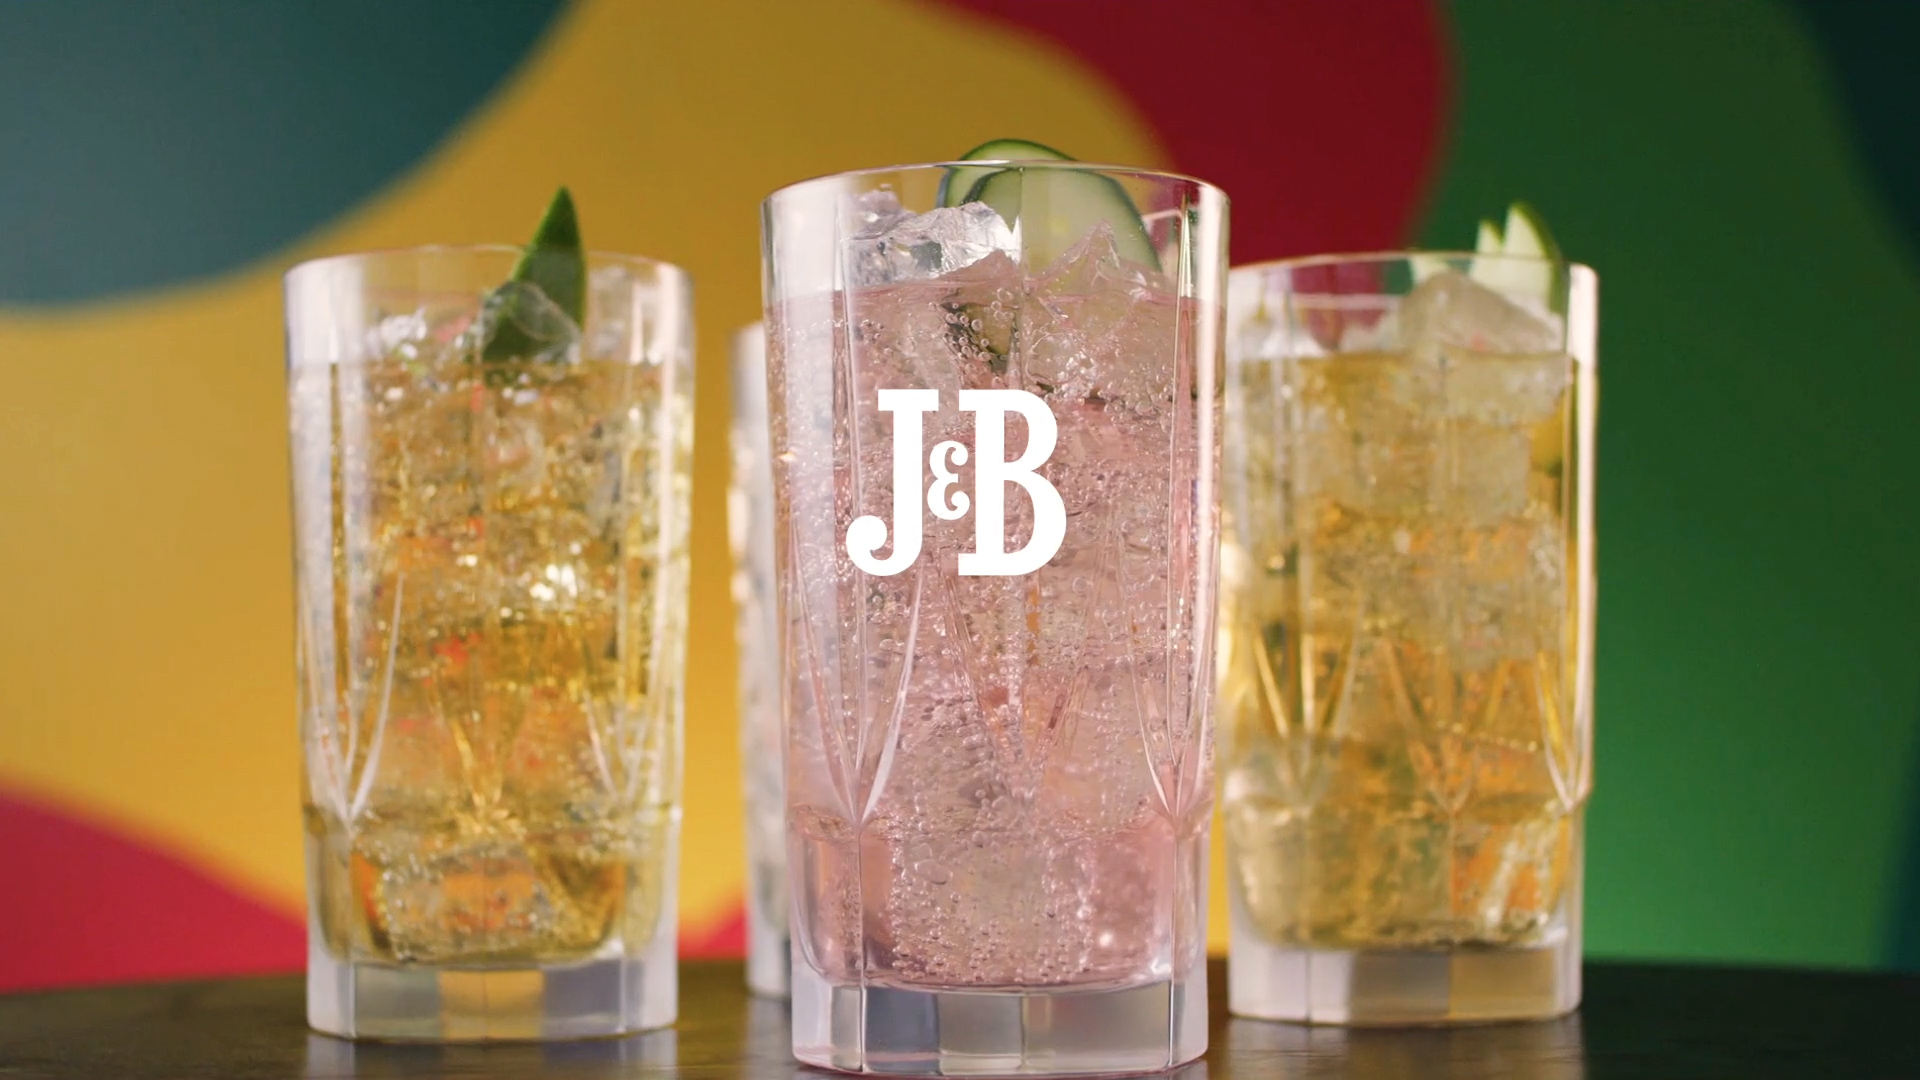 J&B PINKTONIC - Product